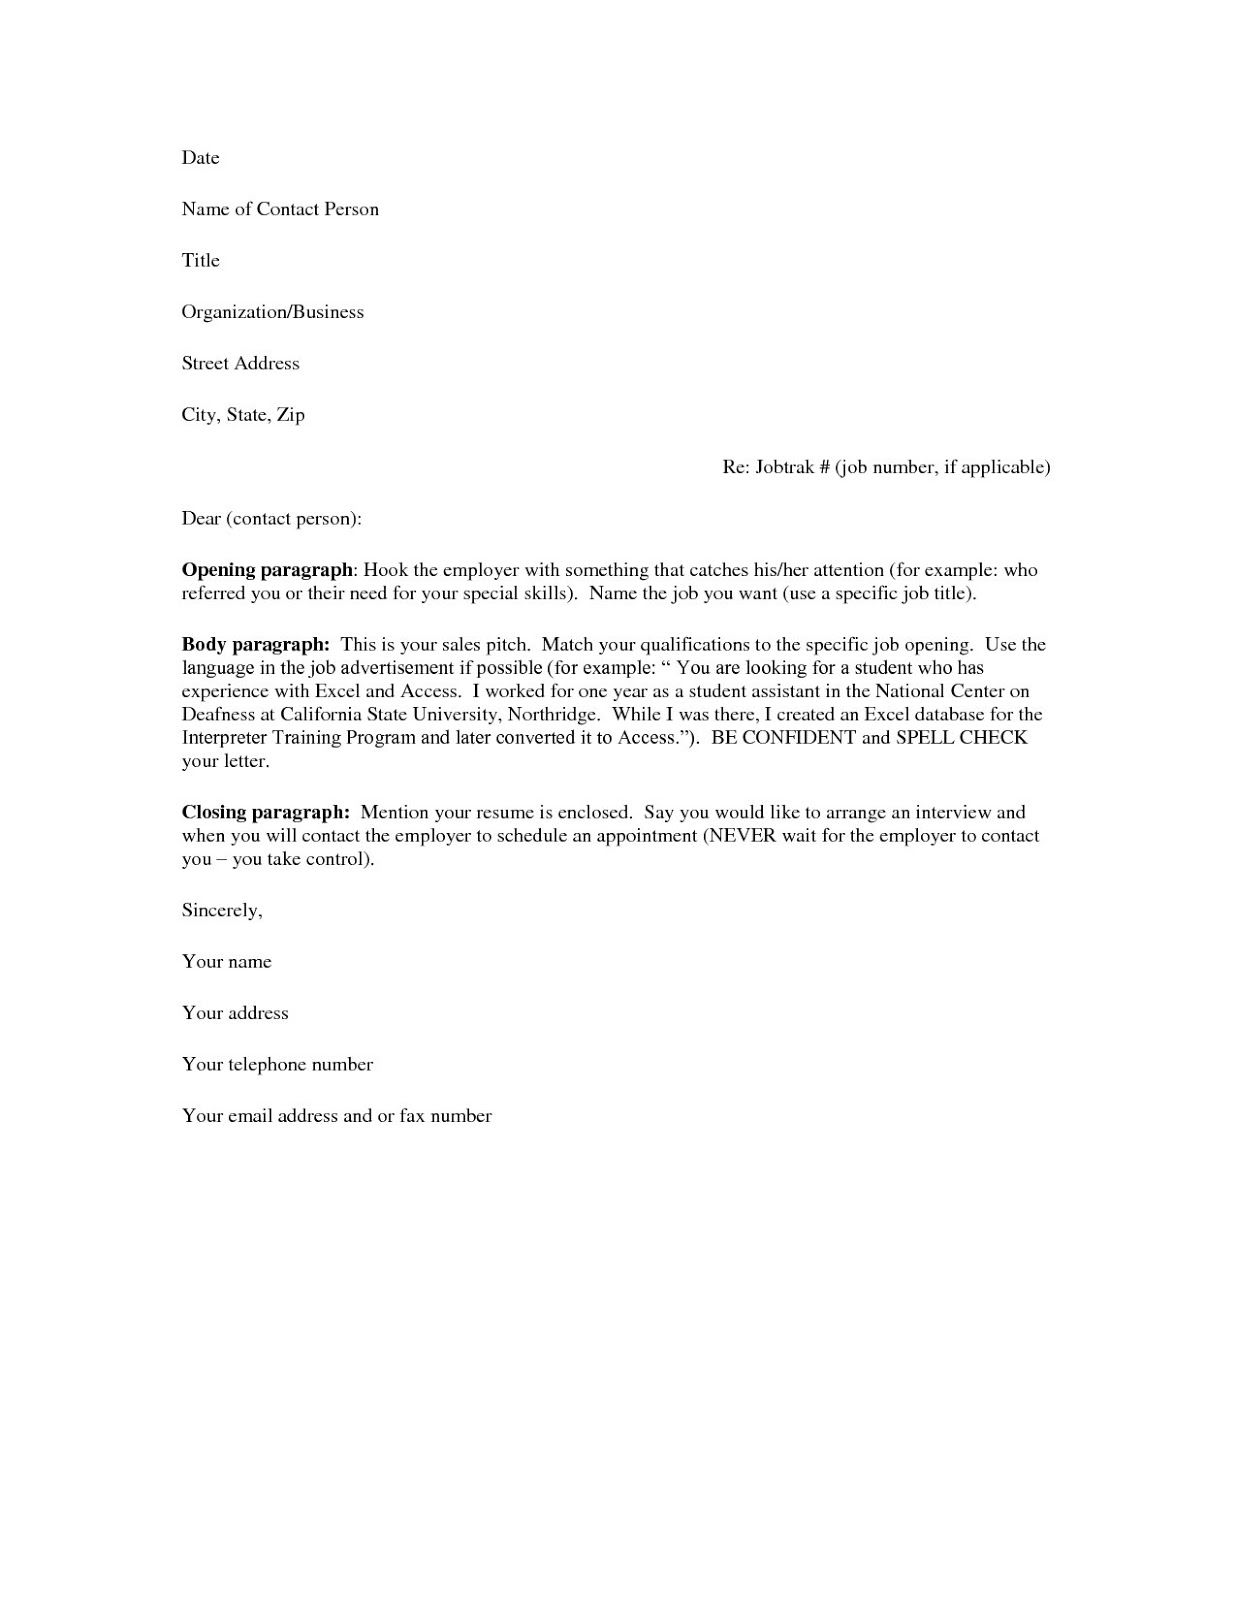 resume letters samples resume letters samples makemoney alex tk